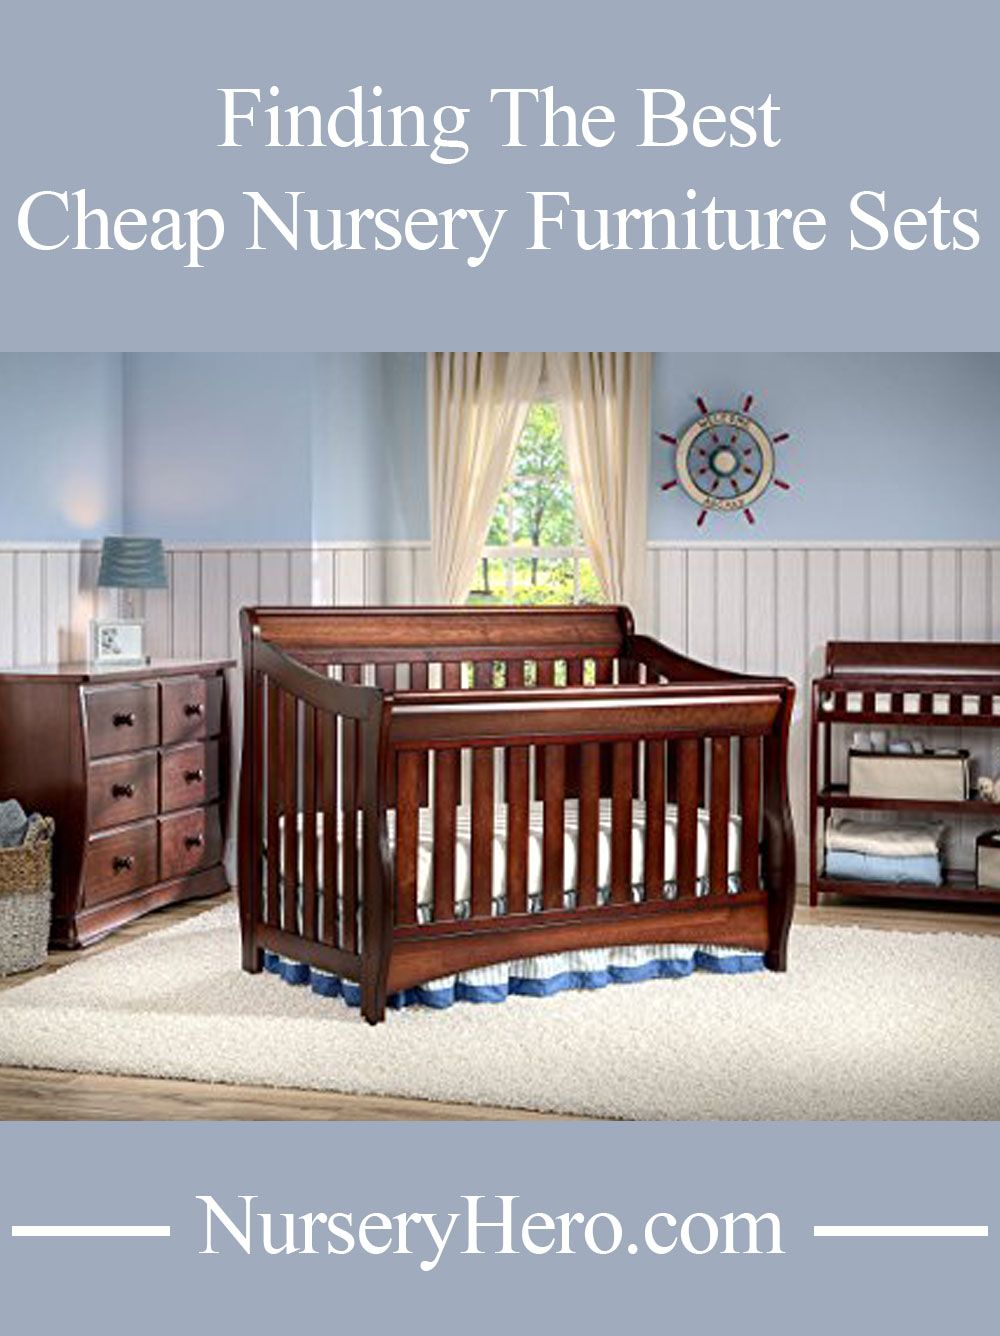 Take A Look At The Best Nursery Furniture Sets To